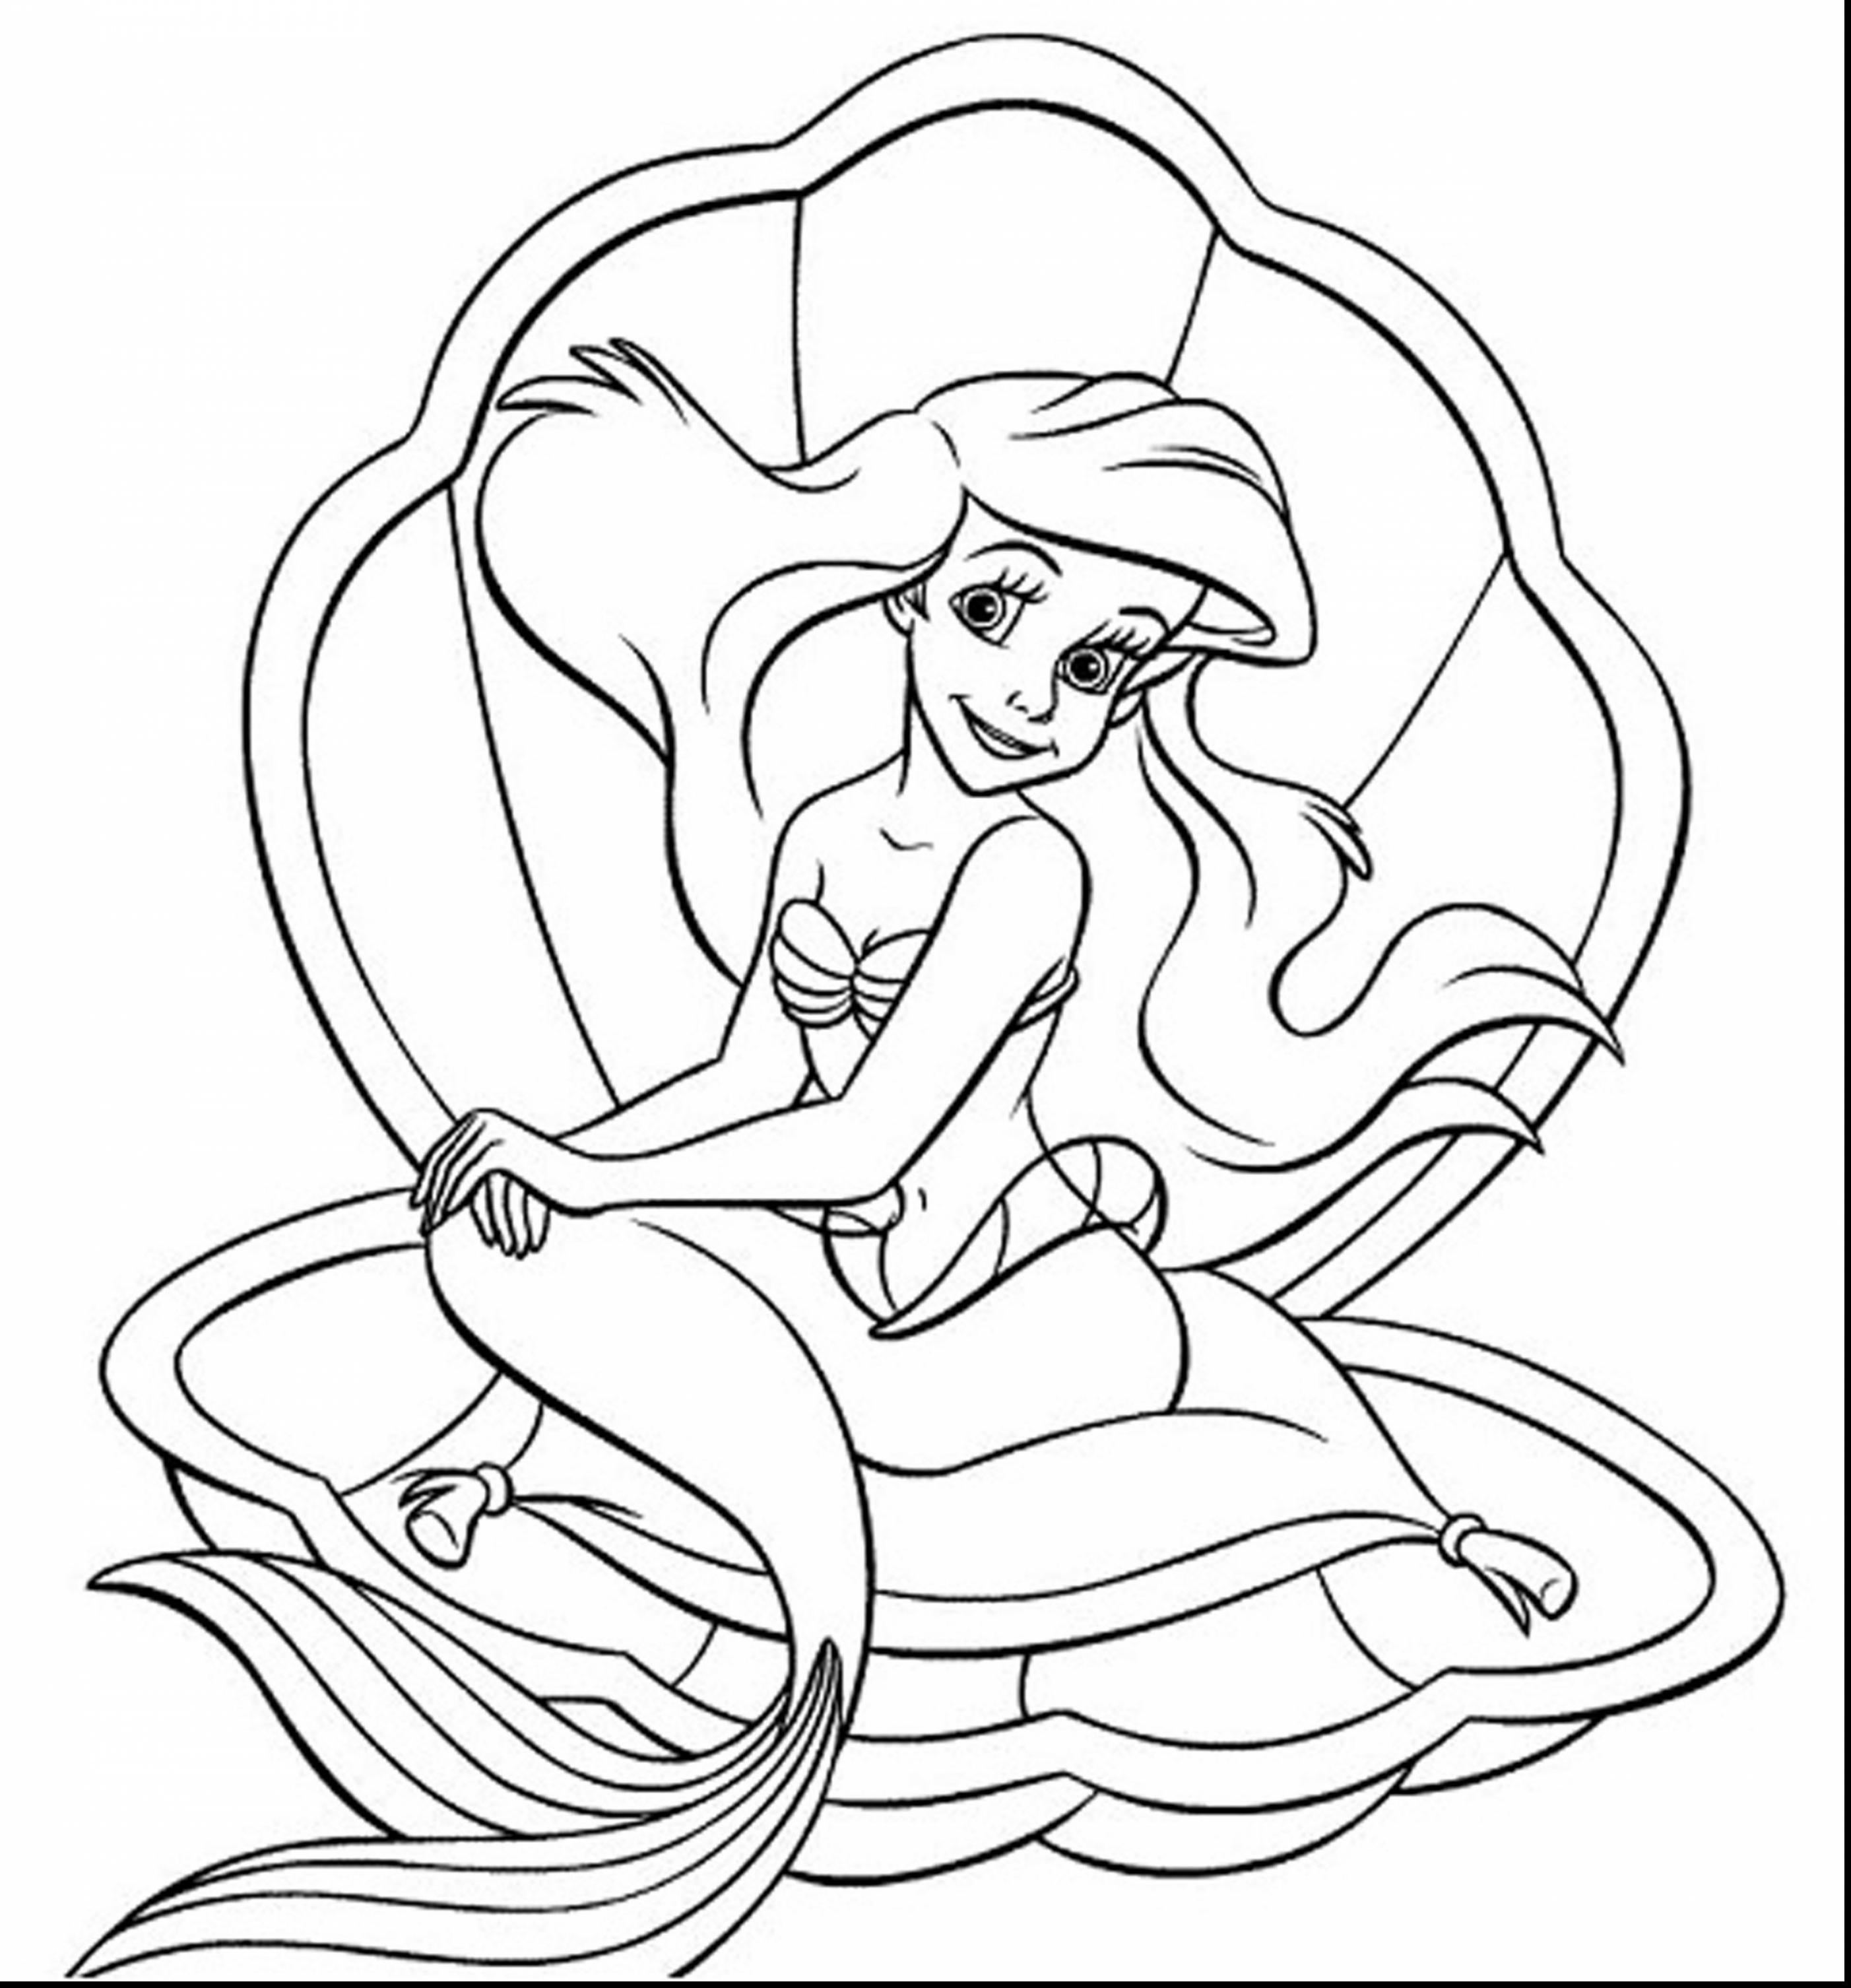 ariel colouring sheets ariel coloring pages to download and print for free ariel sheets colouring